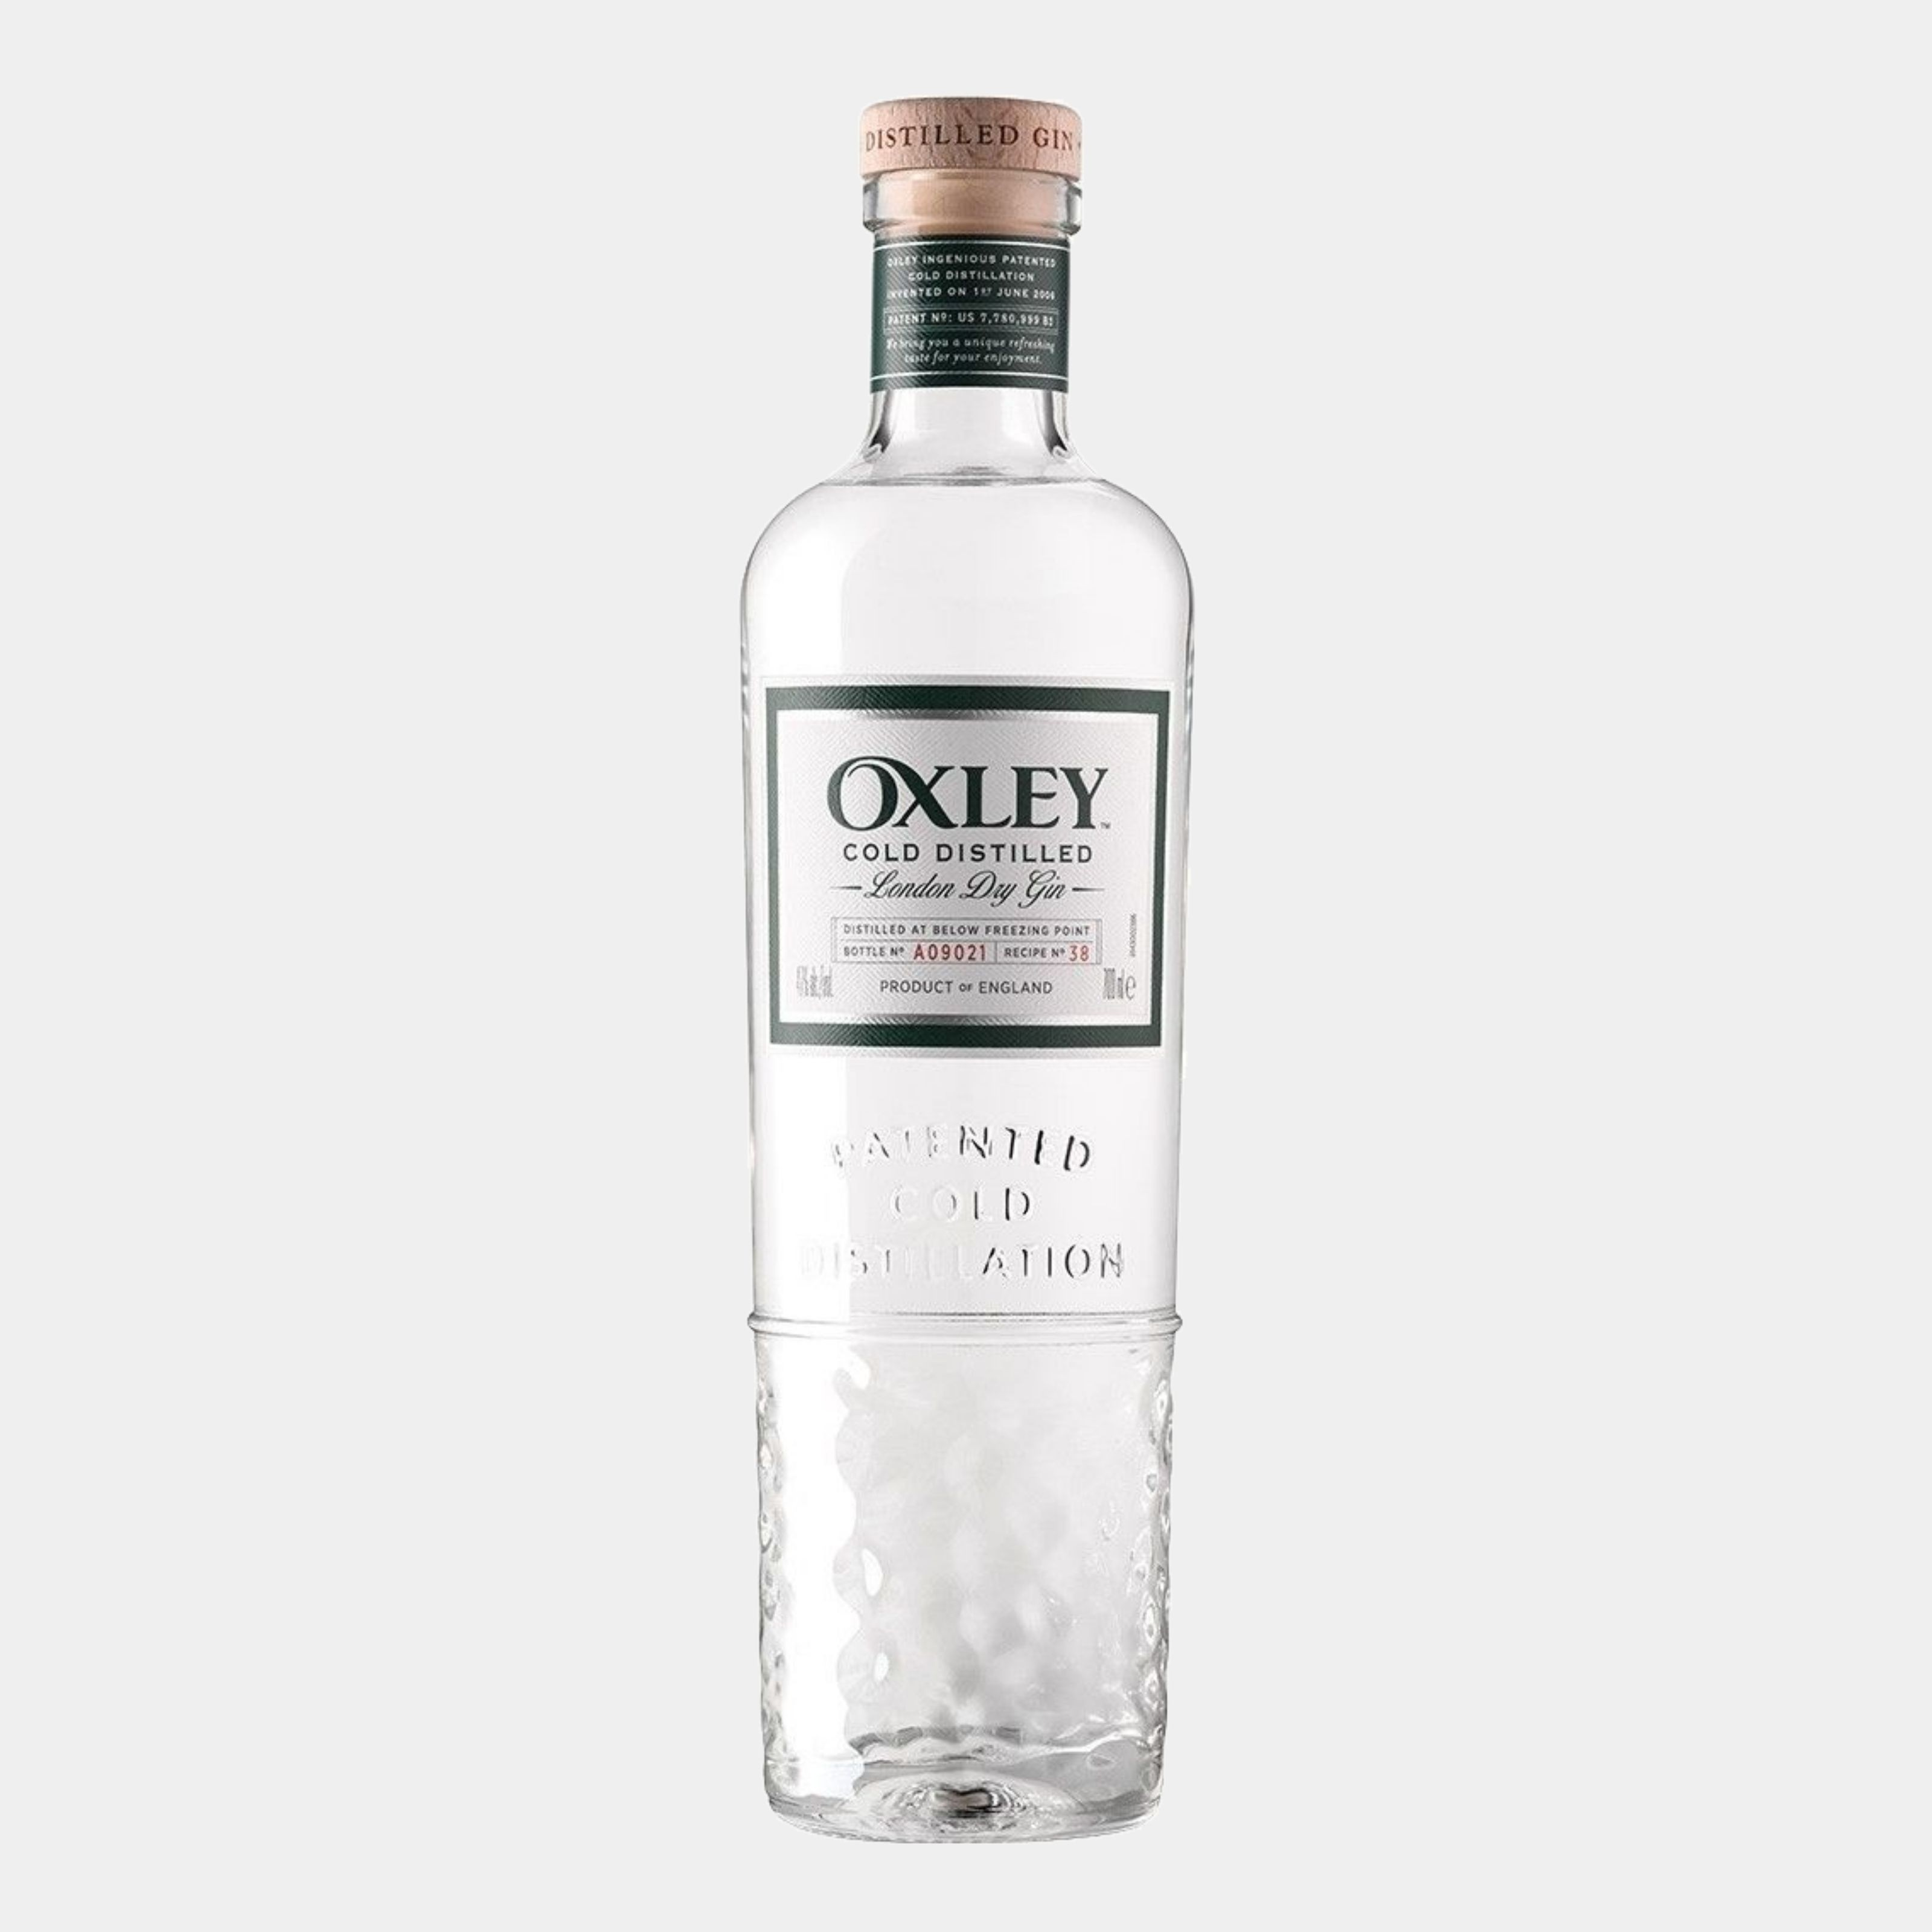 Oxley Dry Gin 0.7L 47% Alk.